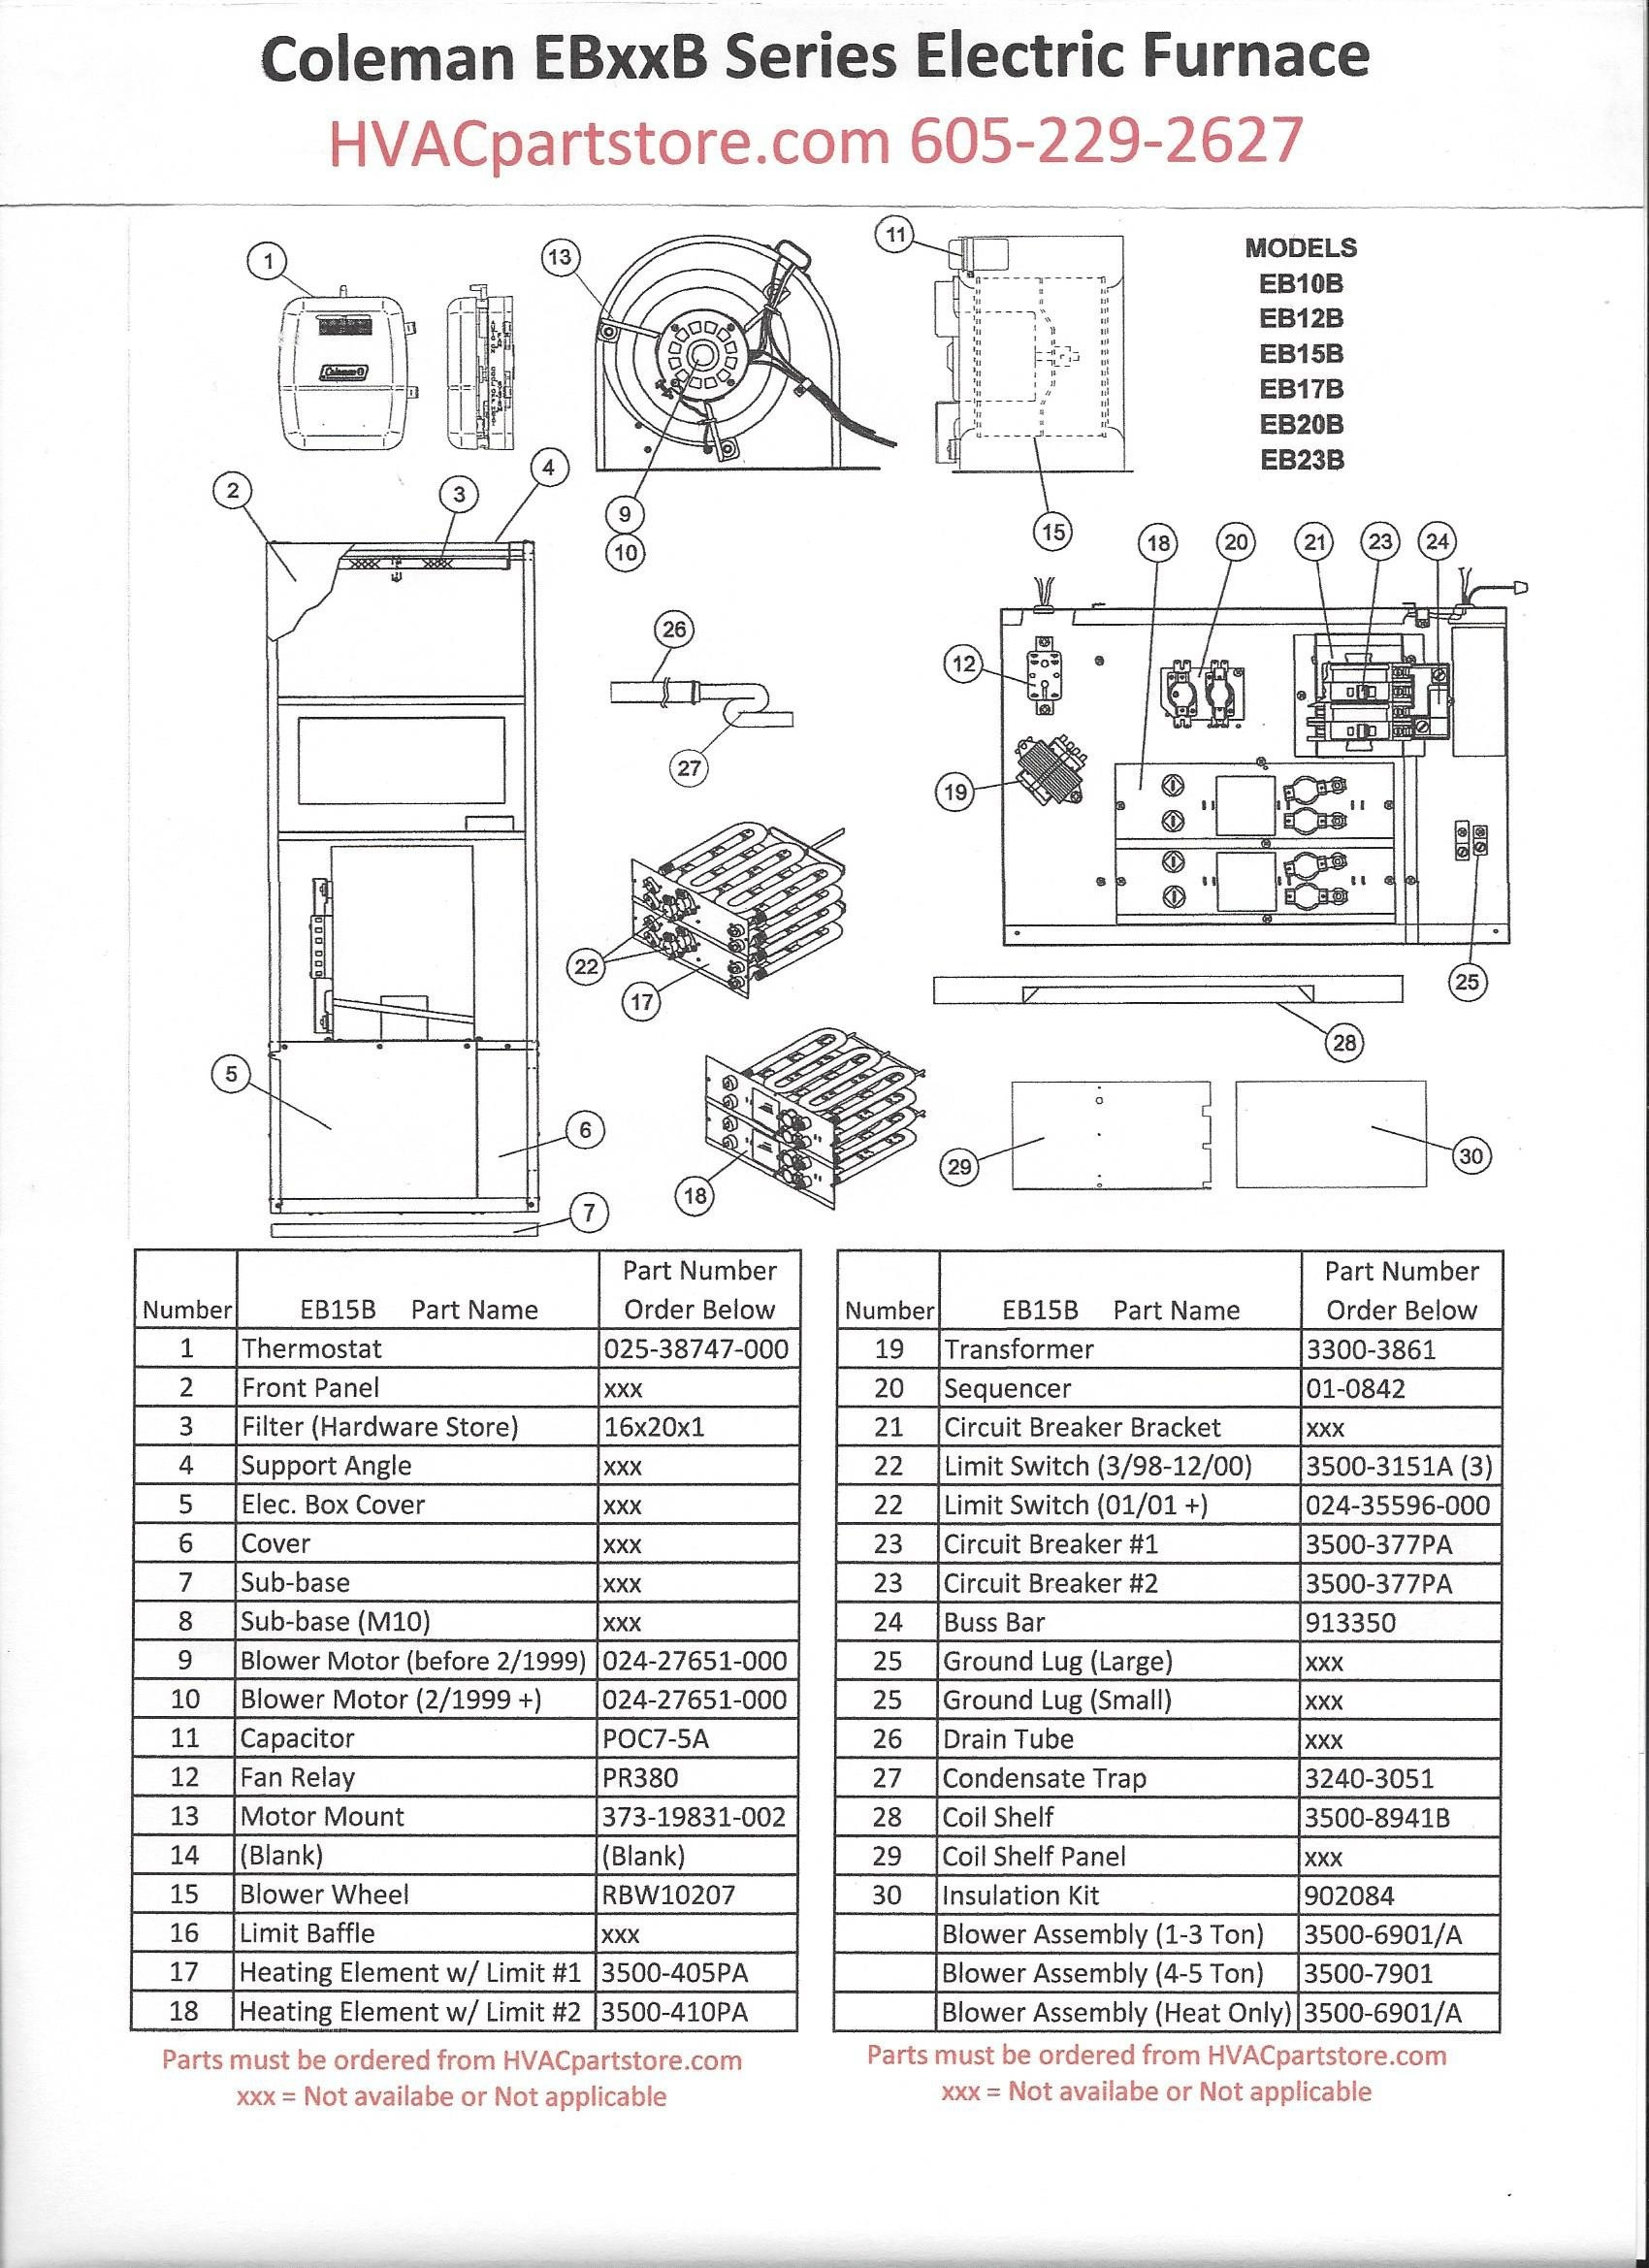 Goodman Electric Furnace Wiring Diagram | Free Wiring Diagram - Goodman Electric Furnace Wiring Diagram